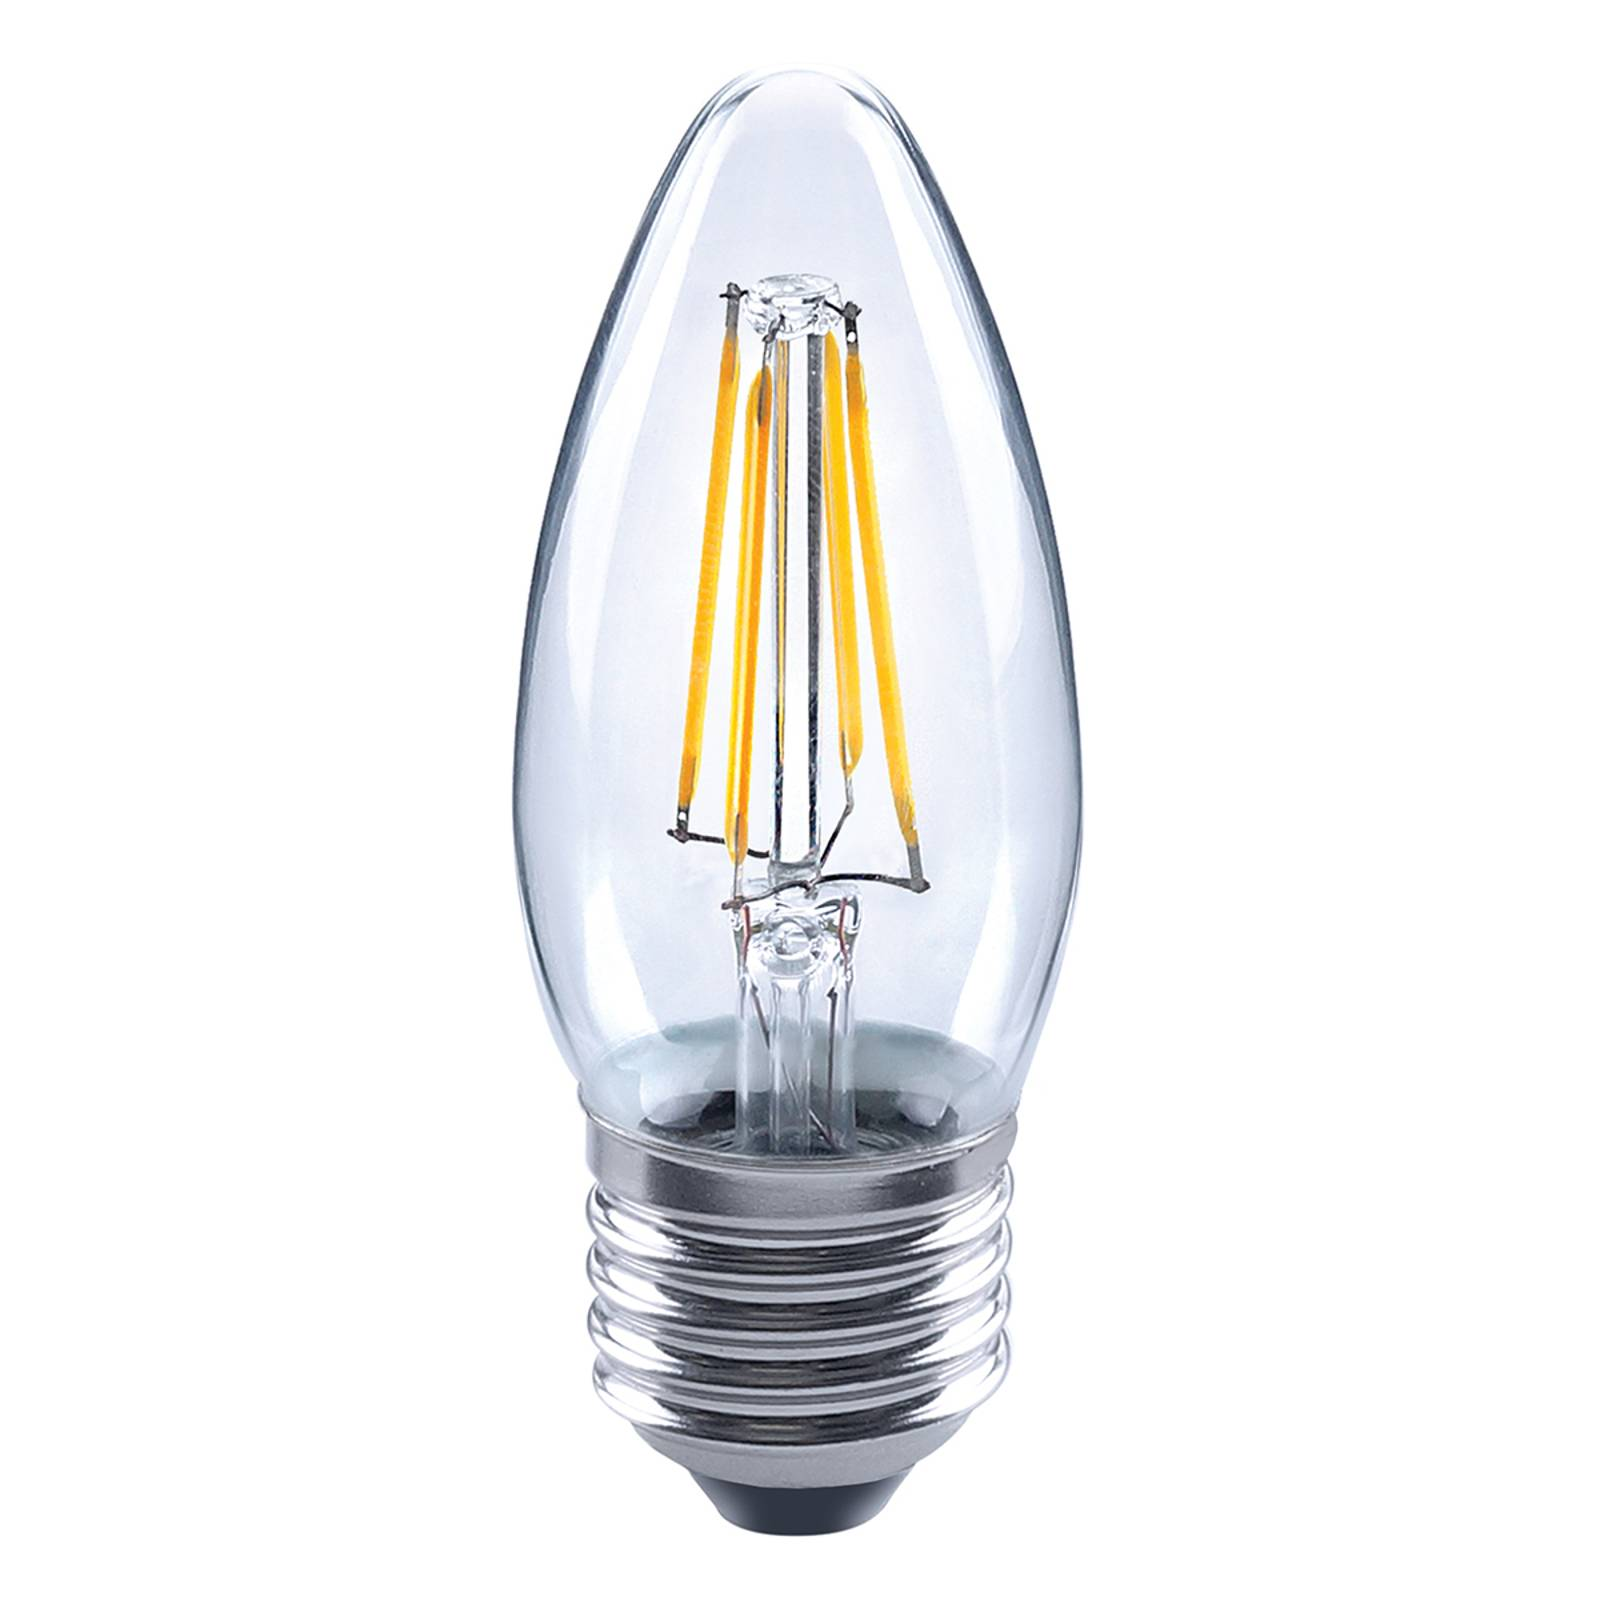 E27 4 W 827 LED candle bulb, clear from Stylvania